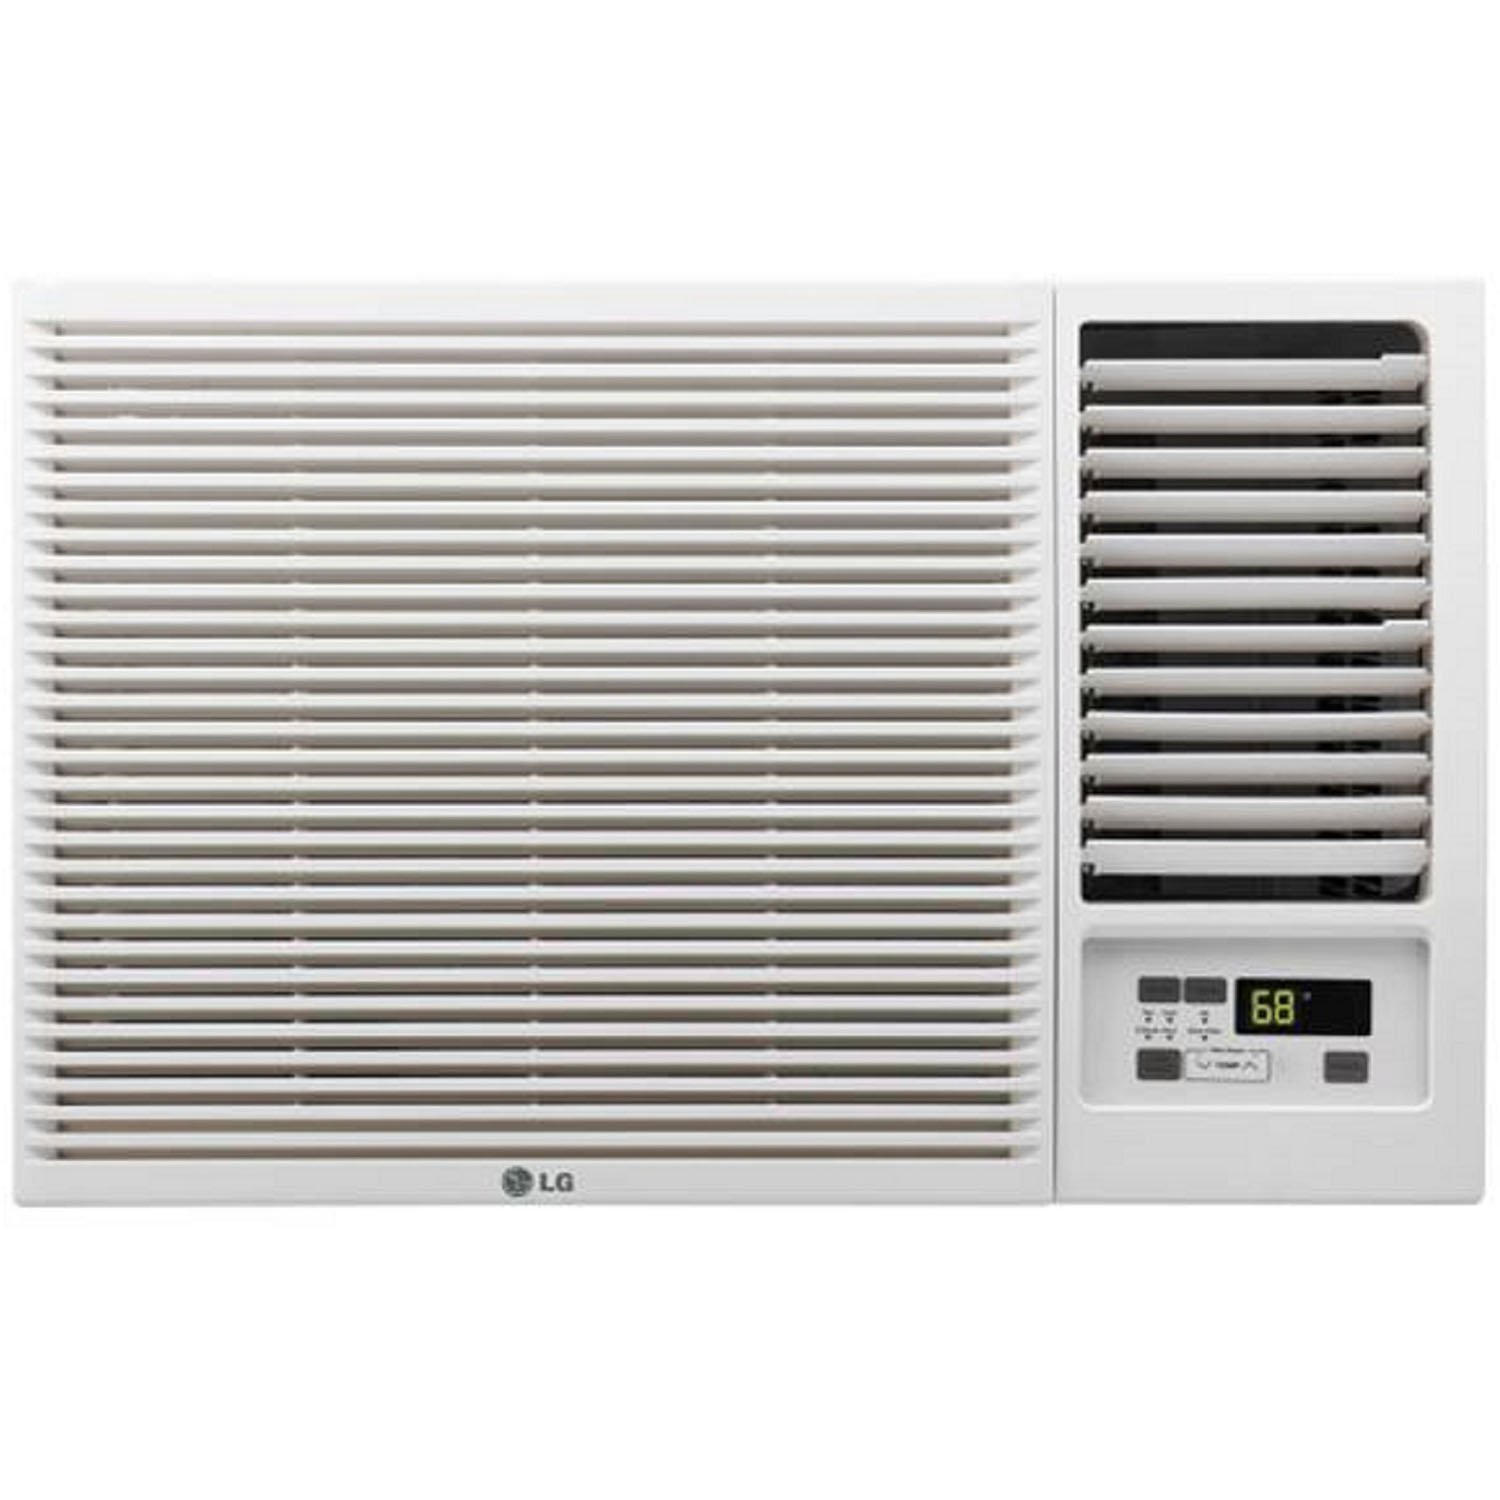 LG 12,000 BTU 230V Window-Mounted AIR Conditioner with 11,200 BTU Heat Function